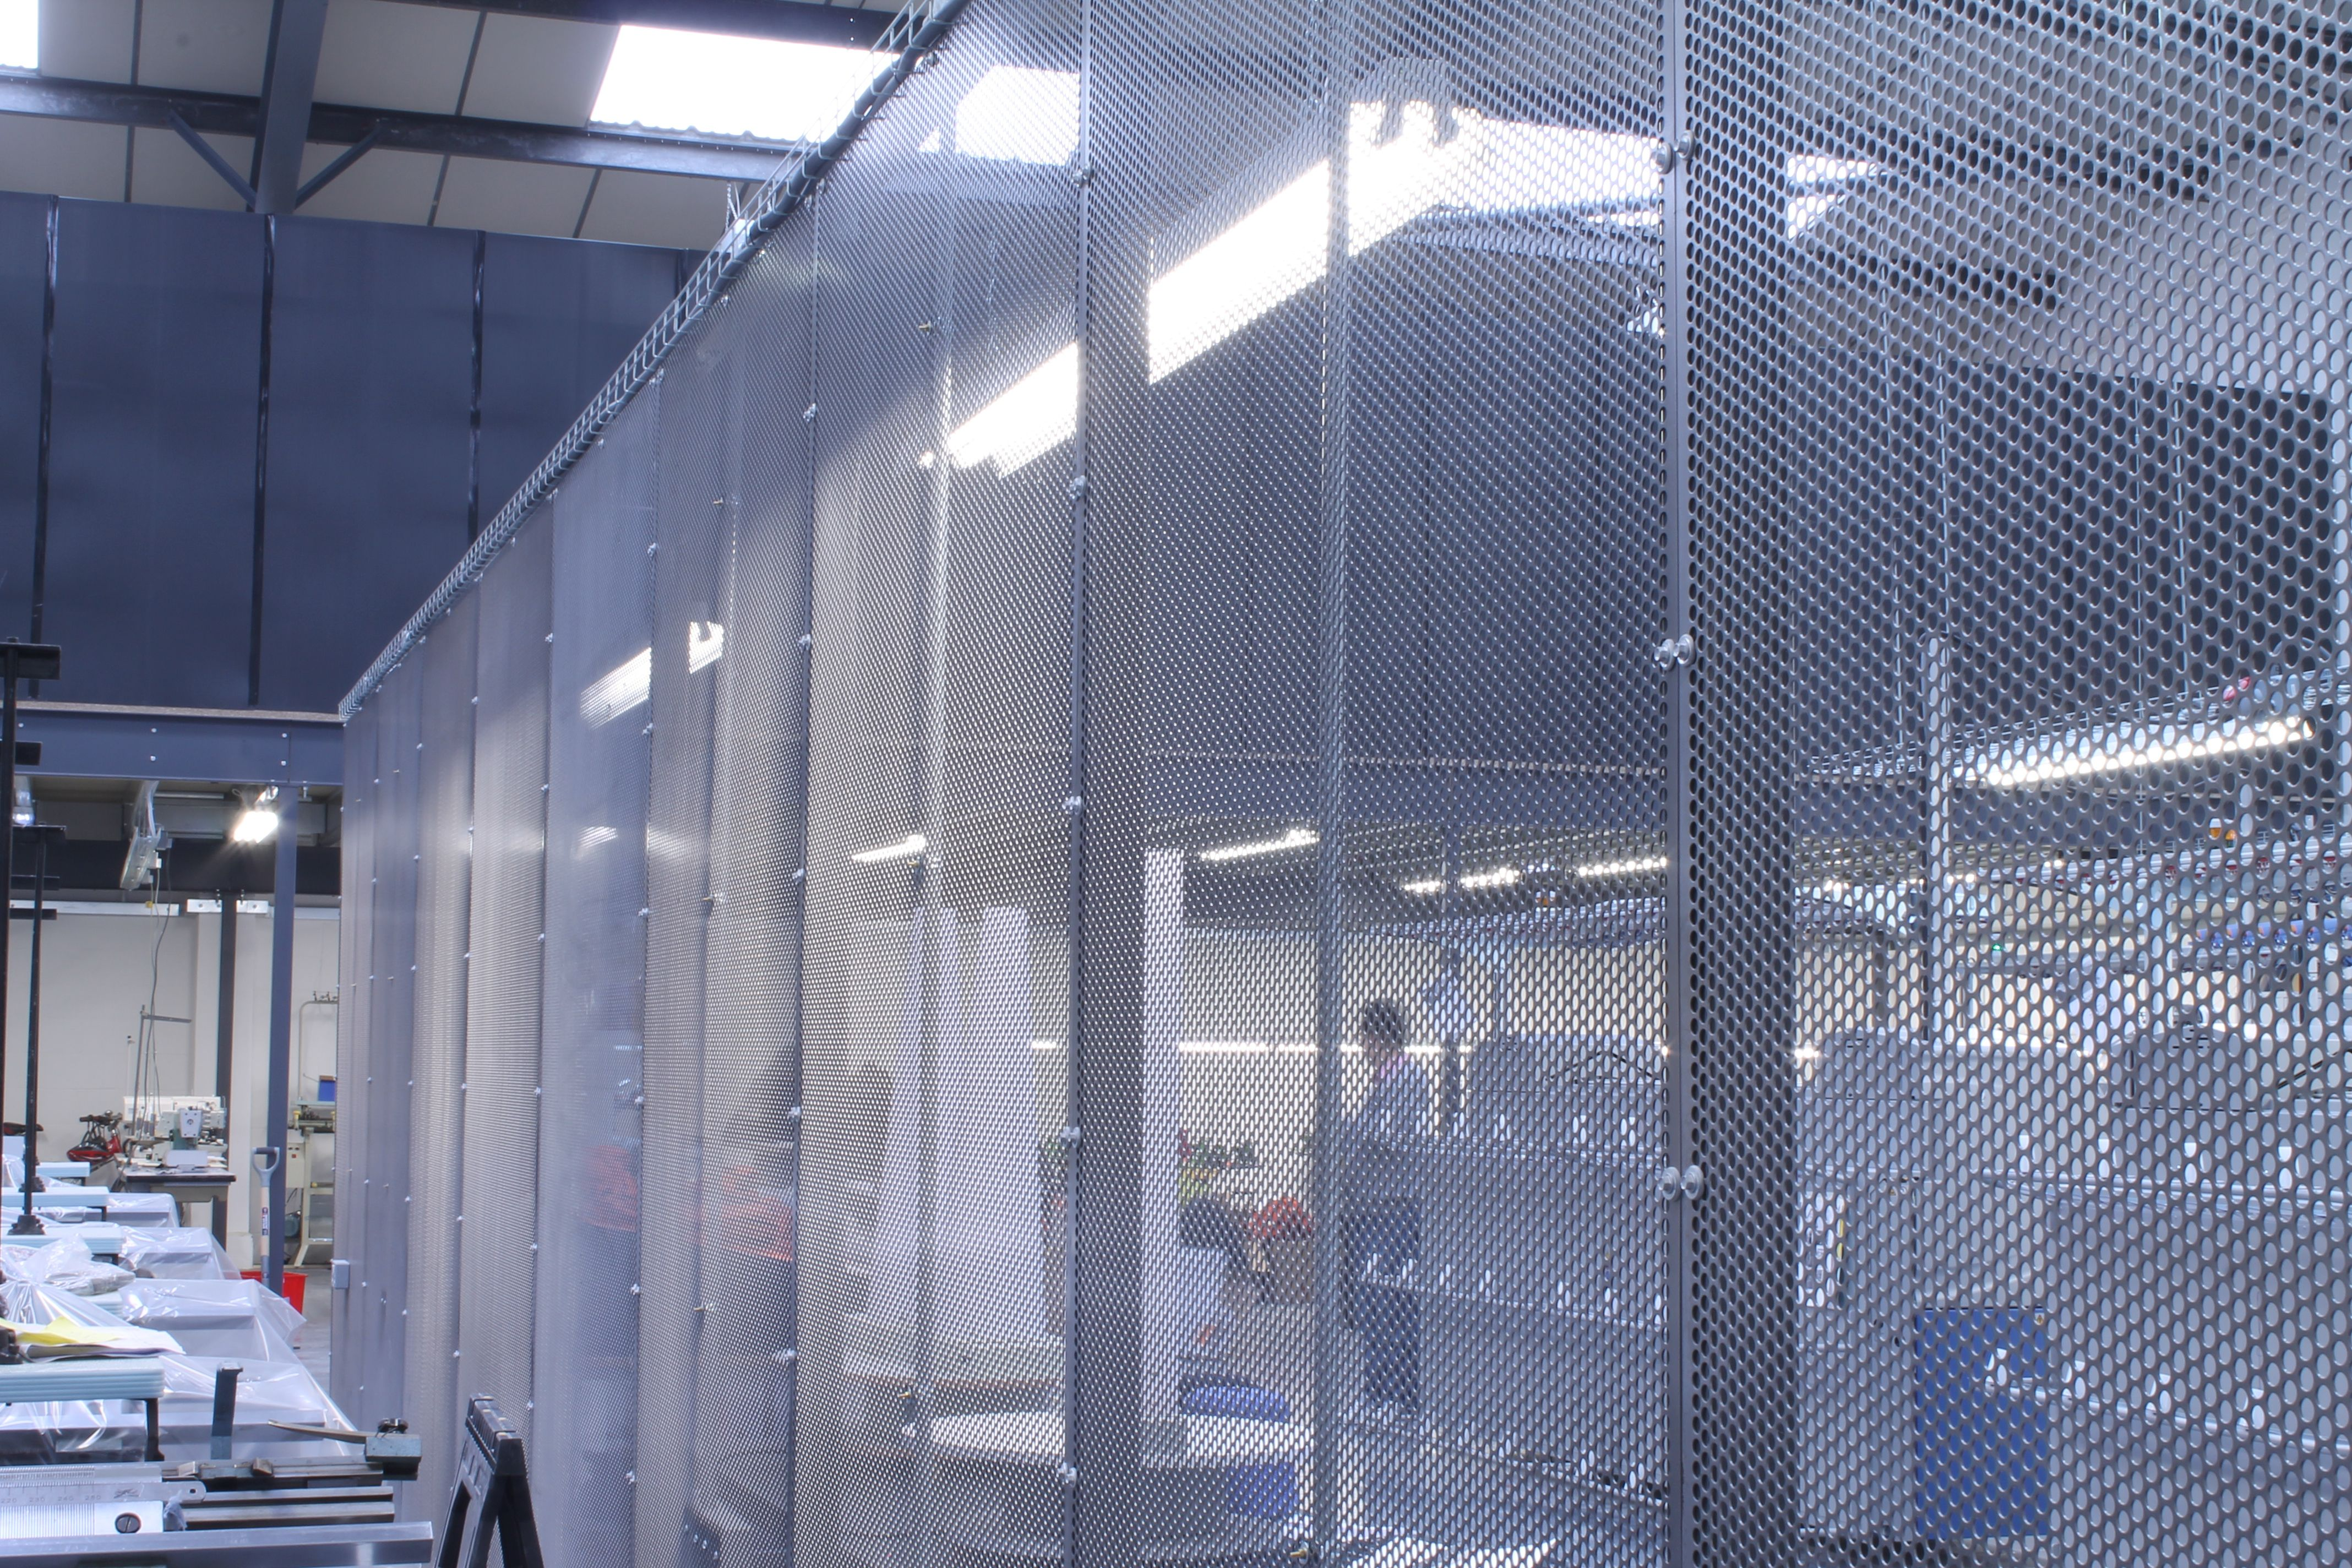 Wire Mesh Partitioning Wall Built For Both Employee Protection And Wiring To Hang Lighting On The Lower Factory Floor